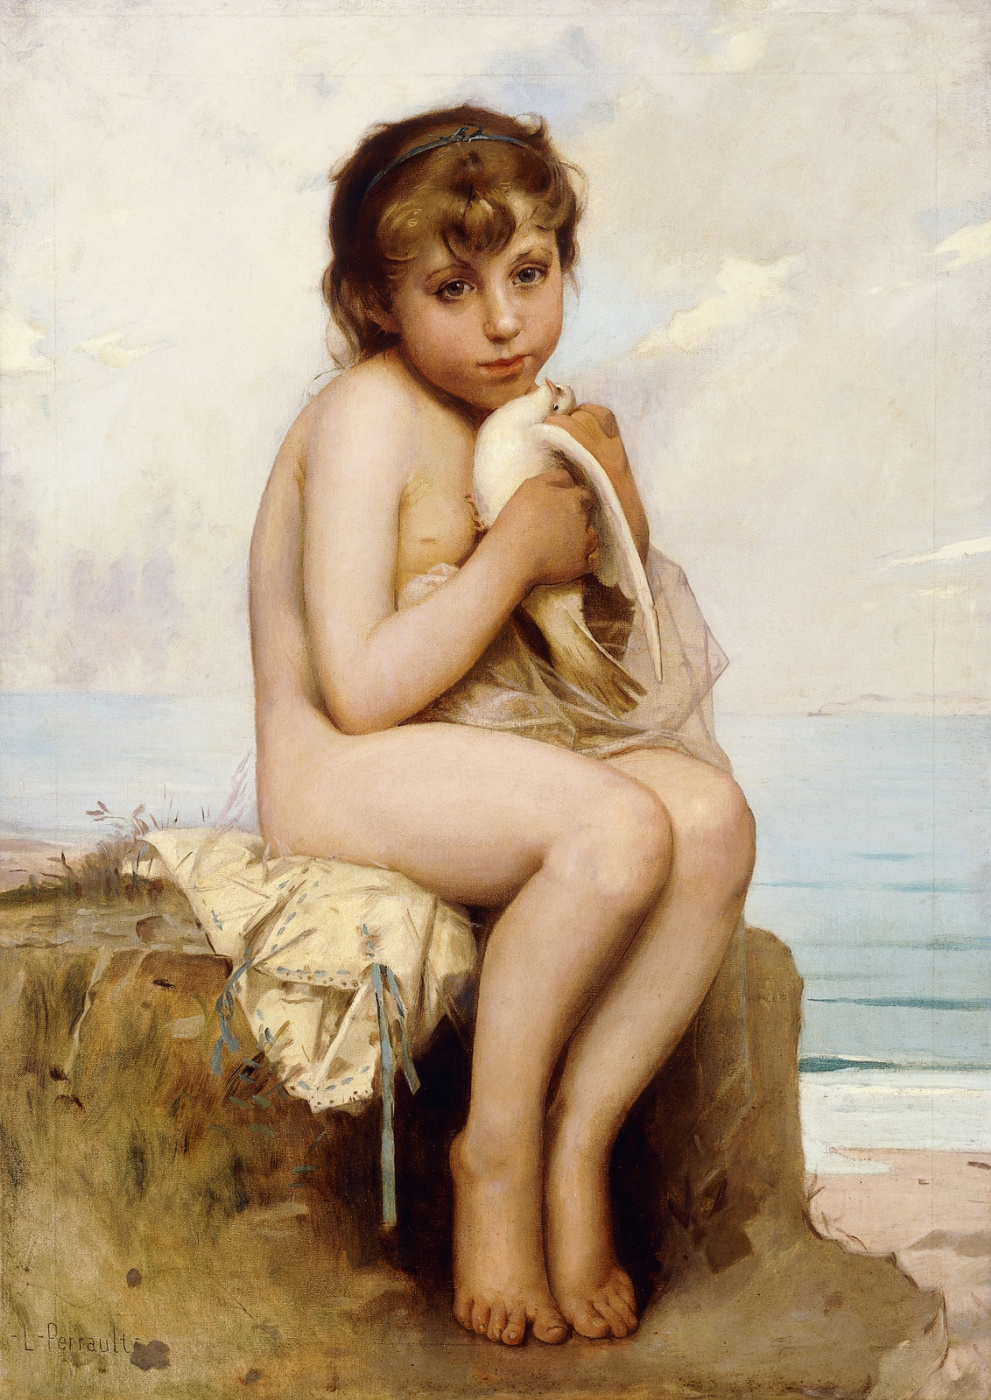 Leon Basile Perrot France 1832-1908. Nude girl with a dove.